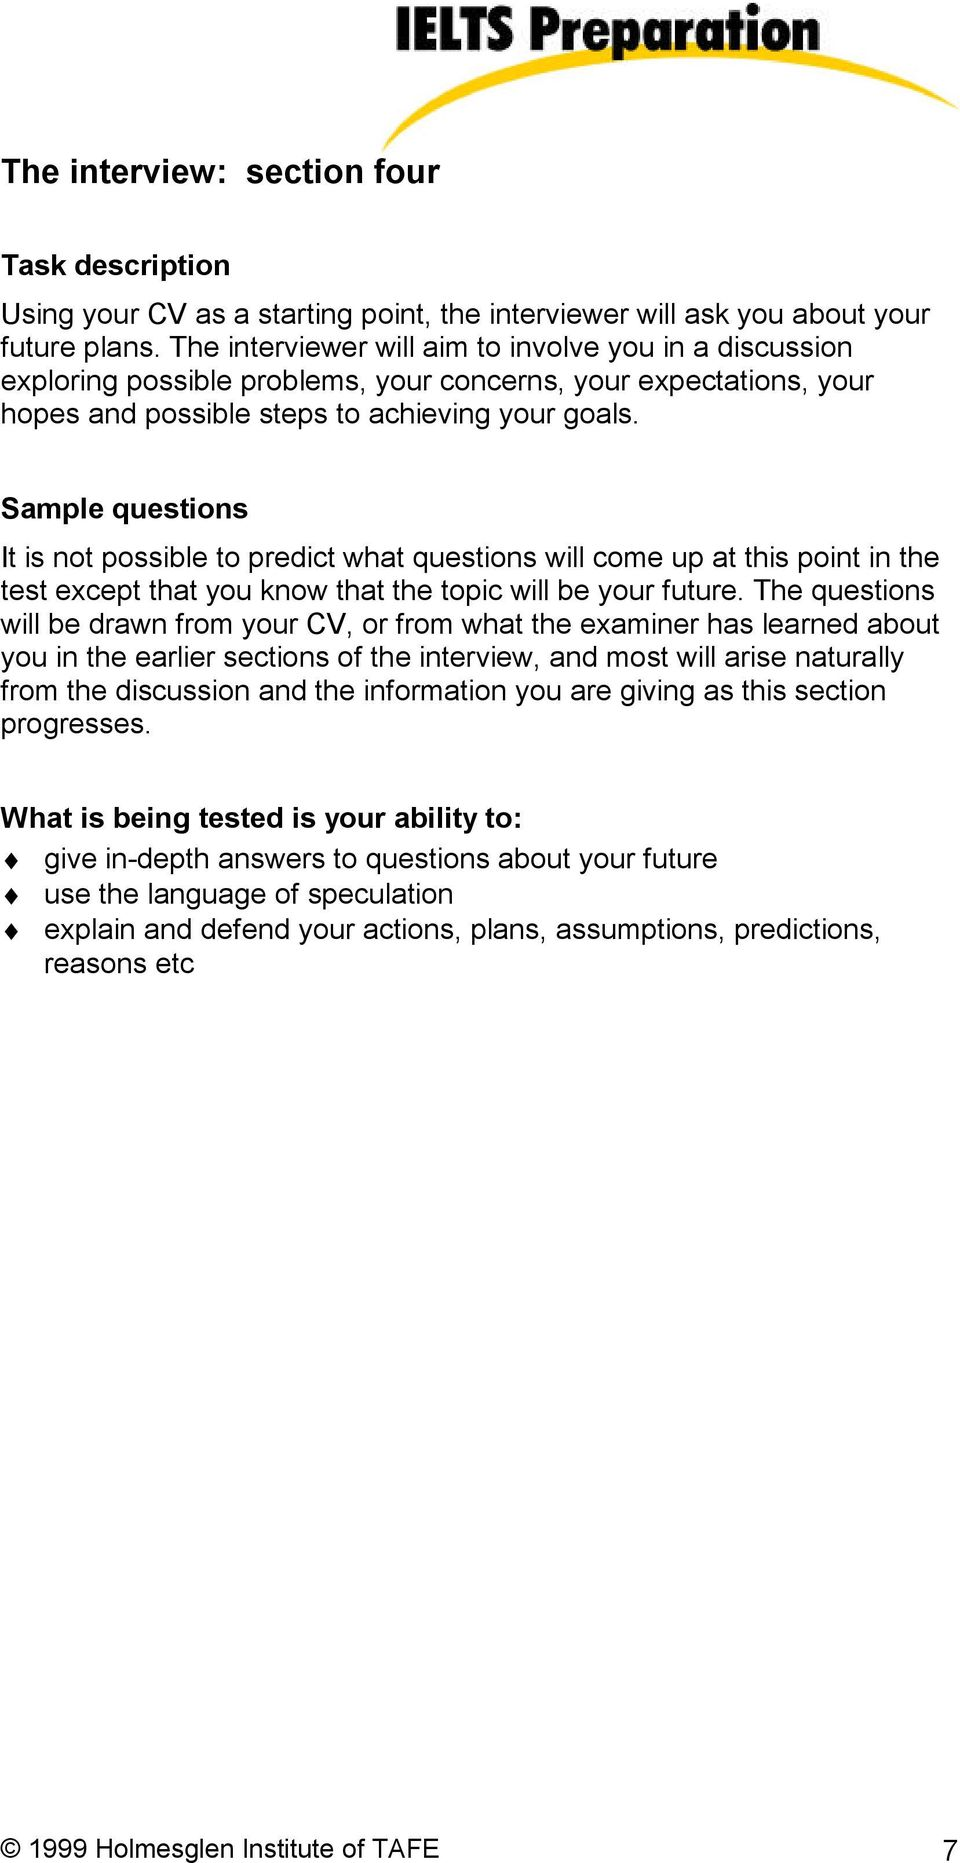 Sample questions It is not possible to predict what questions will come up at this point in the test except that you know that the topic will be your future.